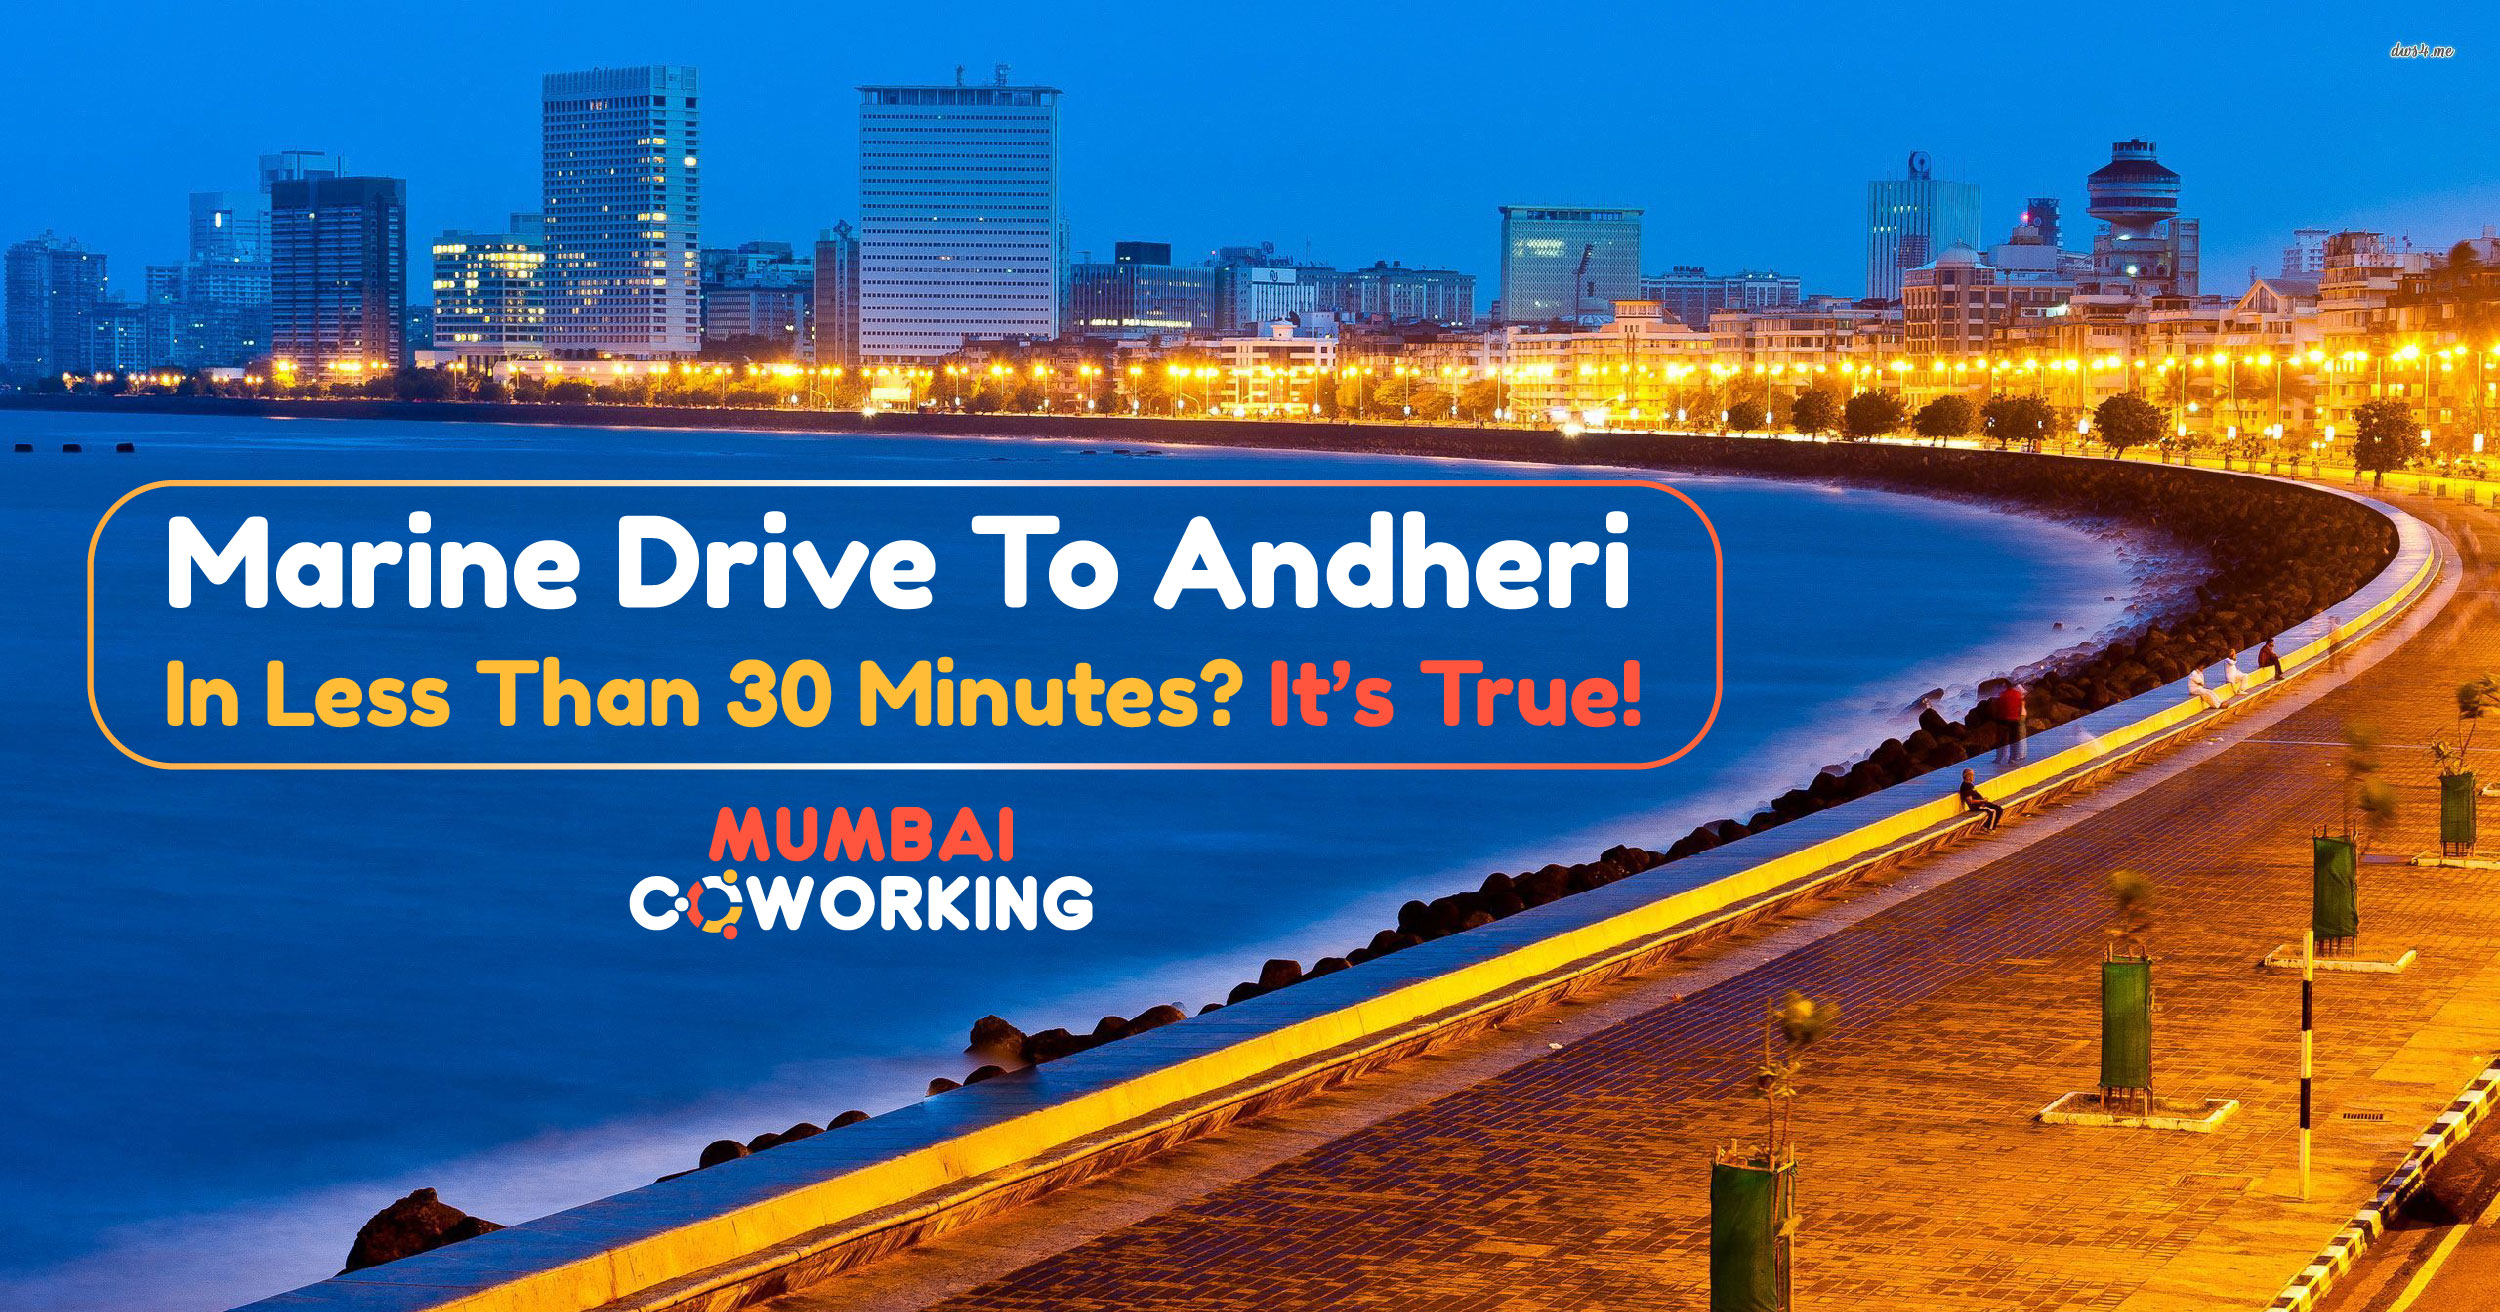 Exclusive Video: Marine Drive To Andheri In Less Than 30 Minutes? It's True! Thanks To The Coastal Road Project